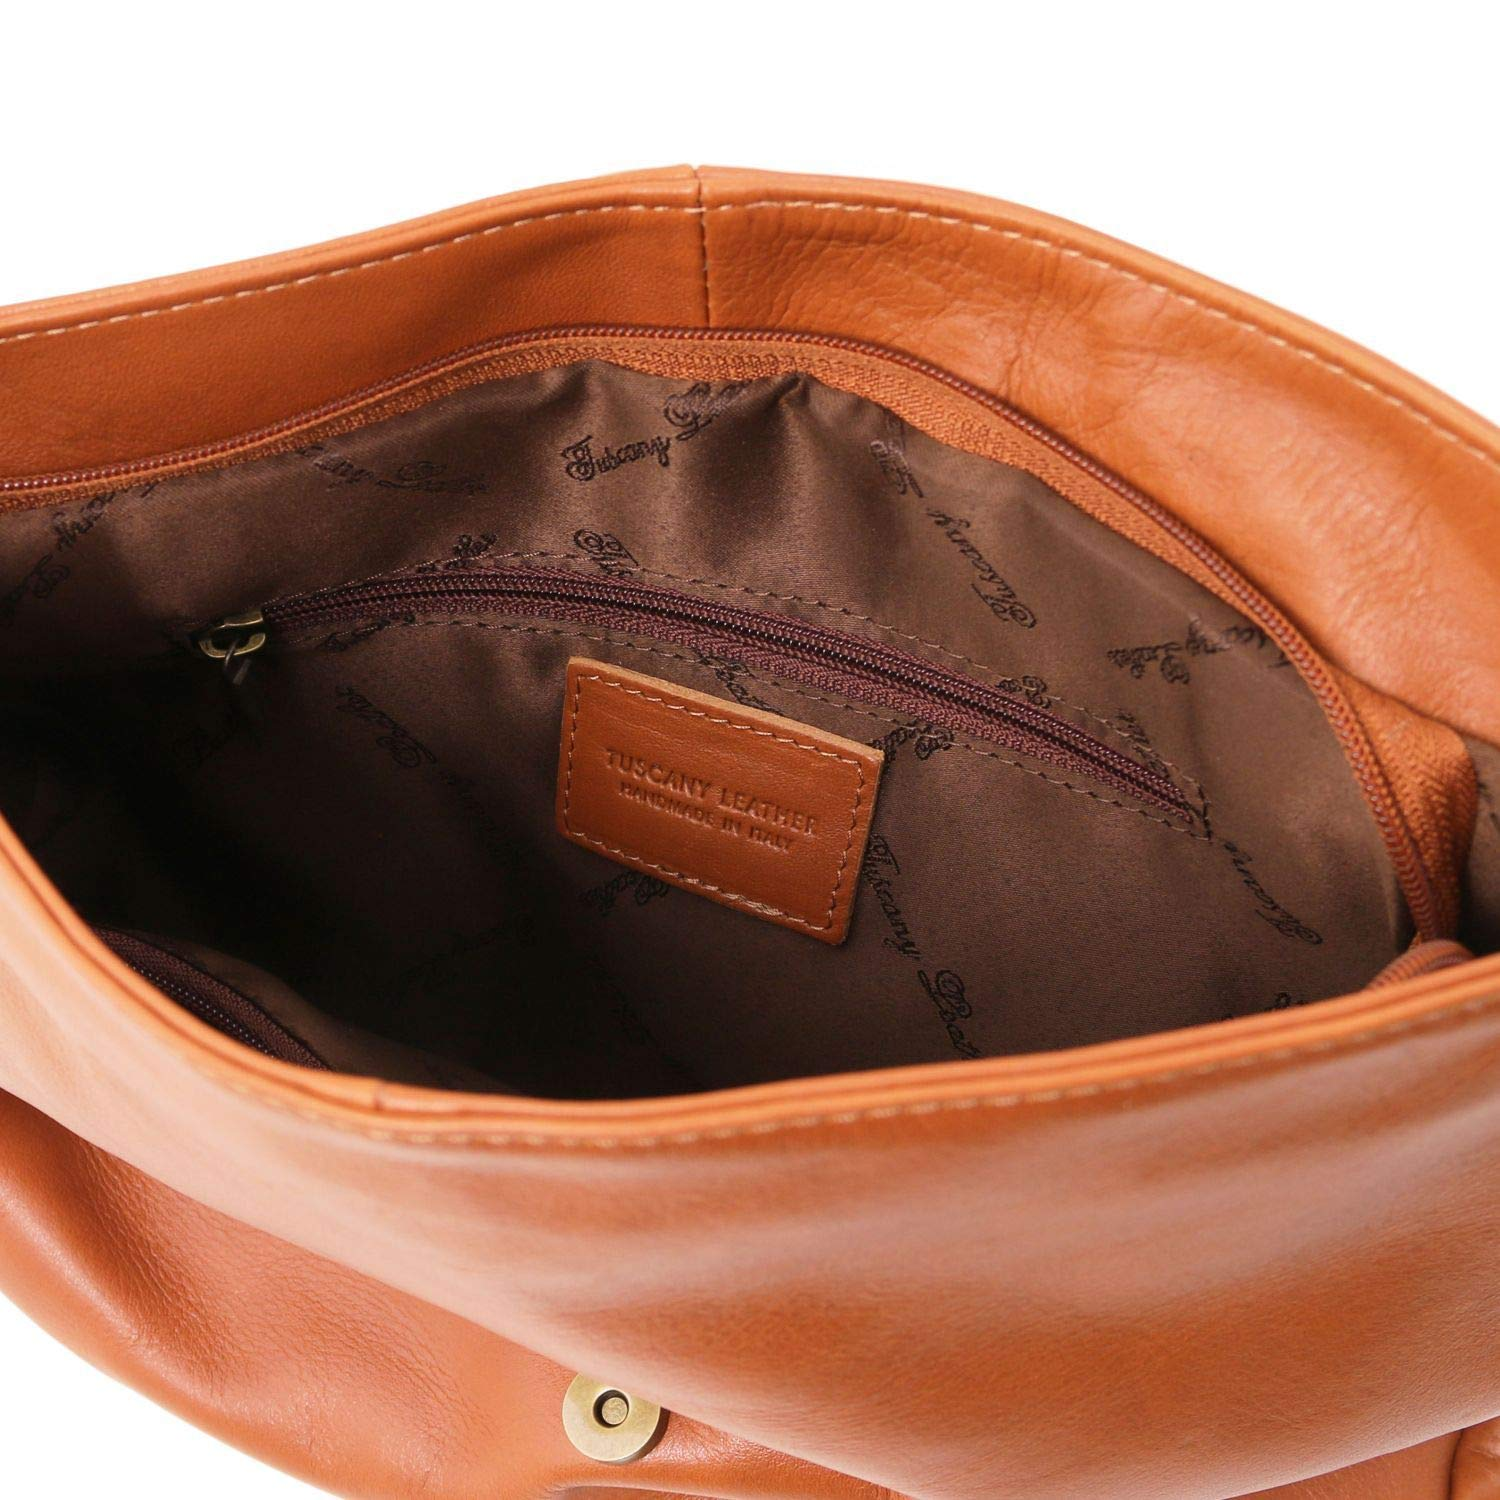 Amazon.com  Tuscany Leather - TL Bag - Soft leather shoulder bag with tassel  detail Cognac - TL141110 6  Fendess. d9adf45eb44f2